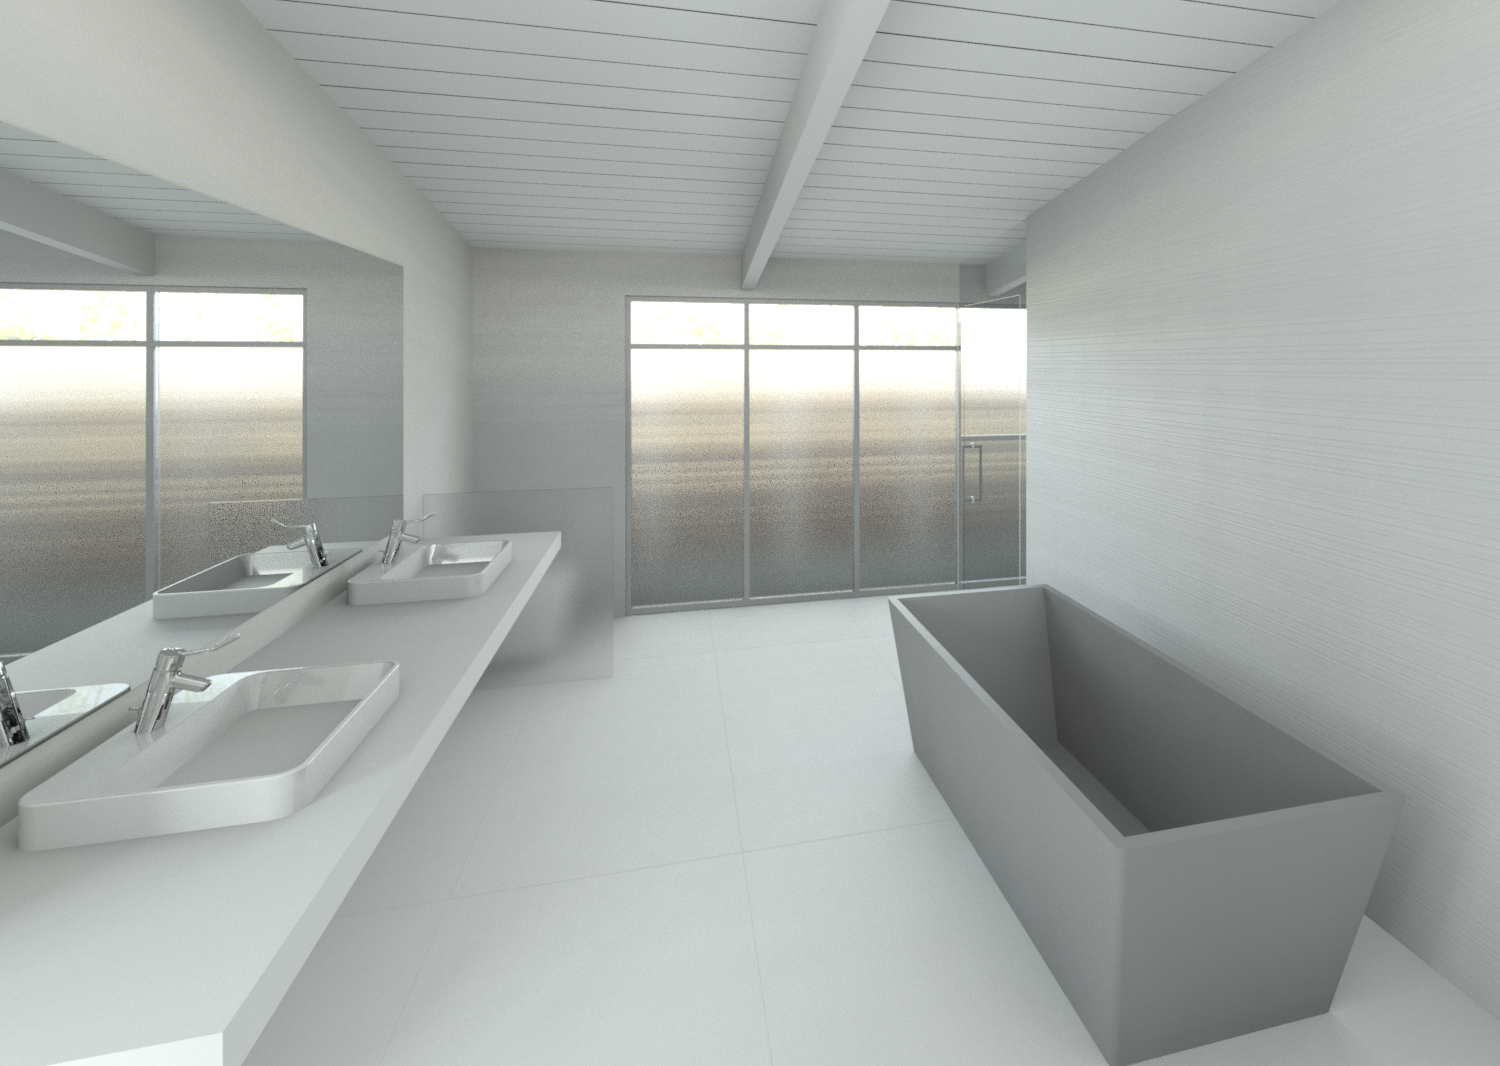 KP-05 _3D_View_-_Master_Bath_-_Entry.png